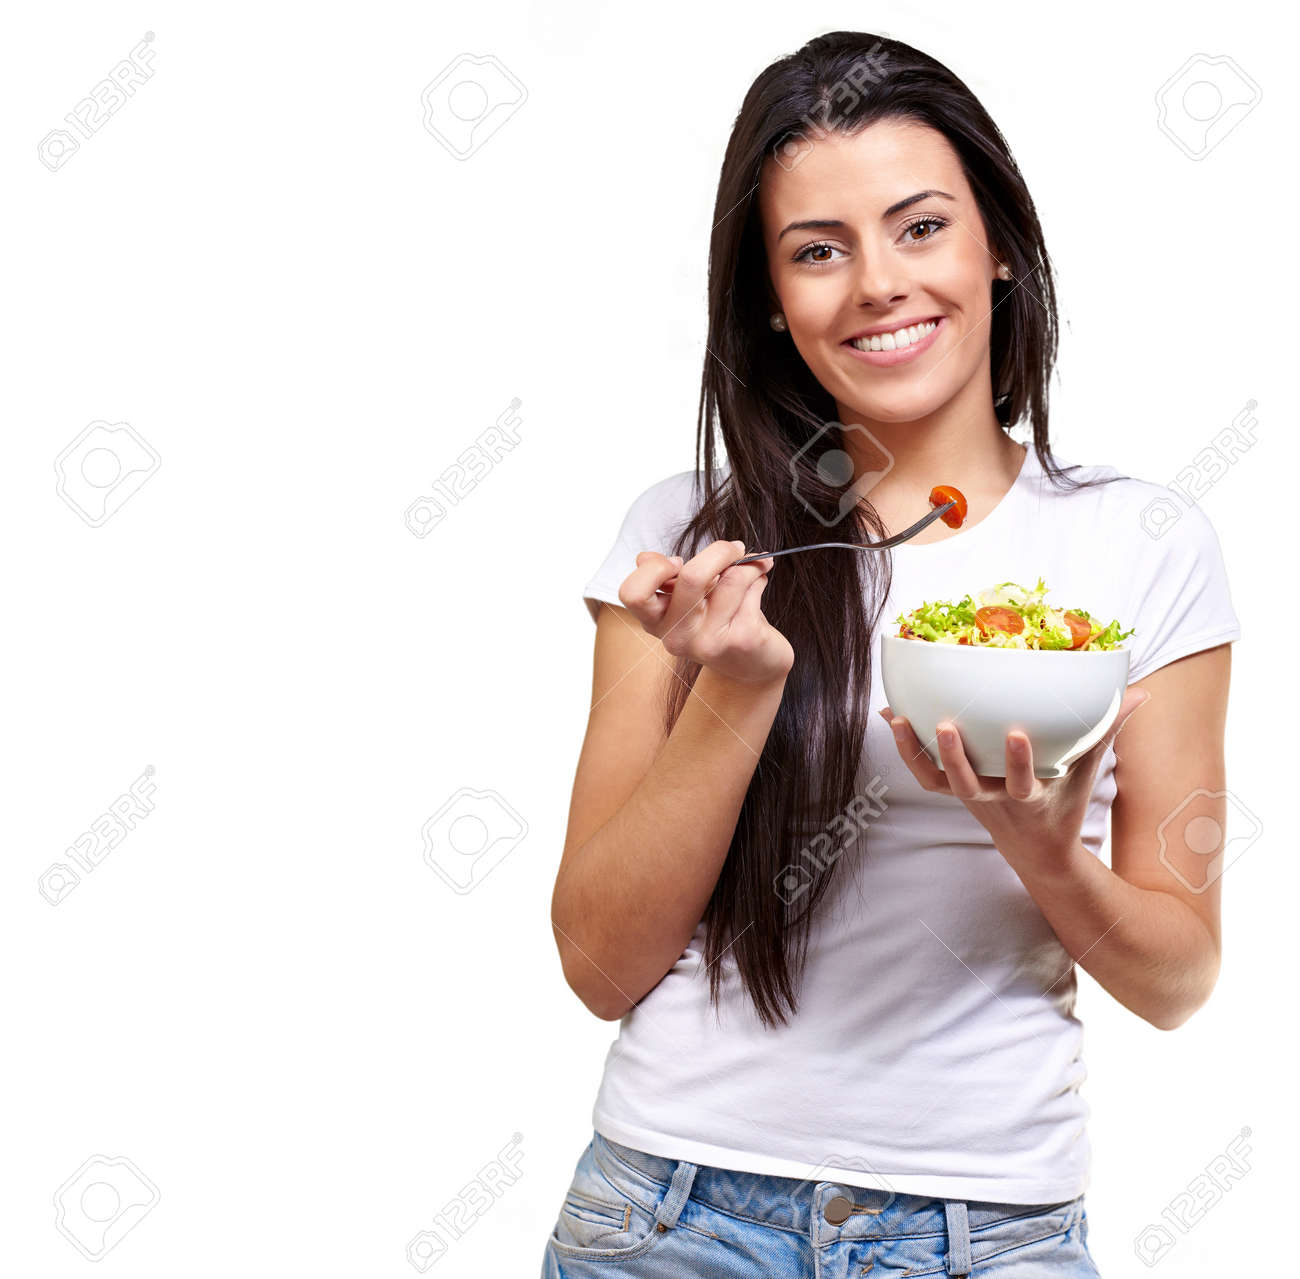 portrait of healthy woman eating salad against a white background Stock Photo - 13609608